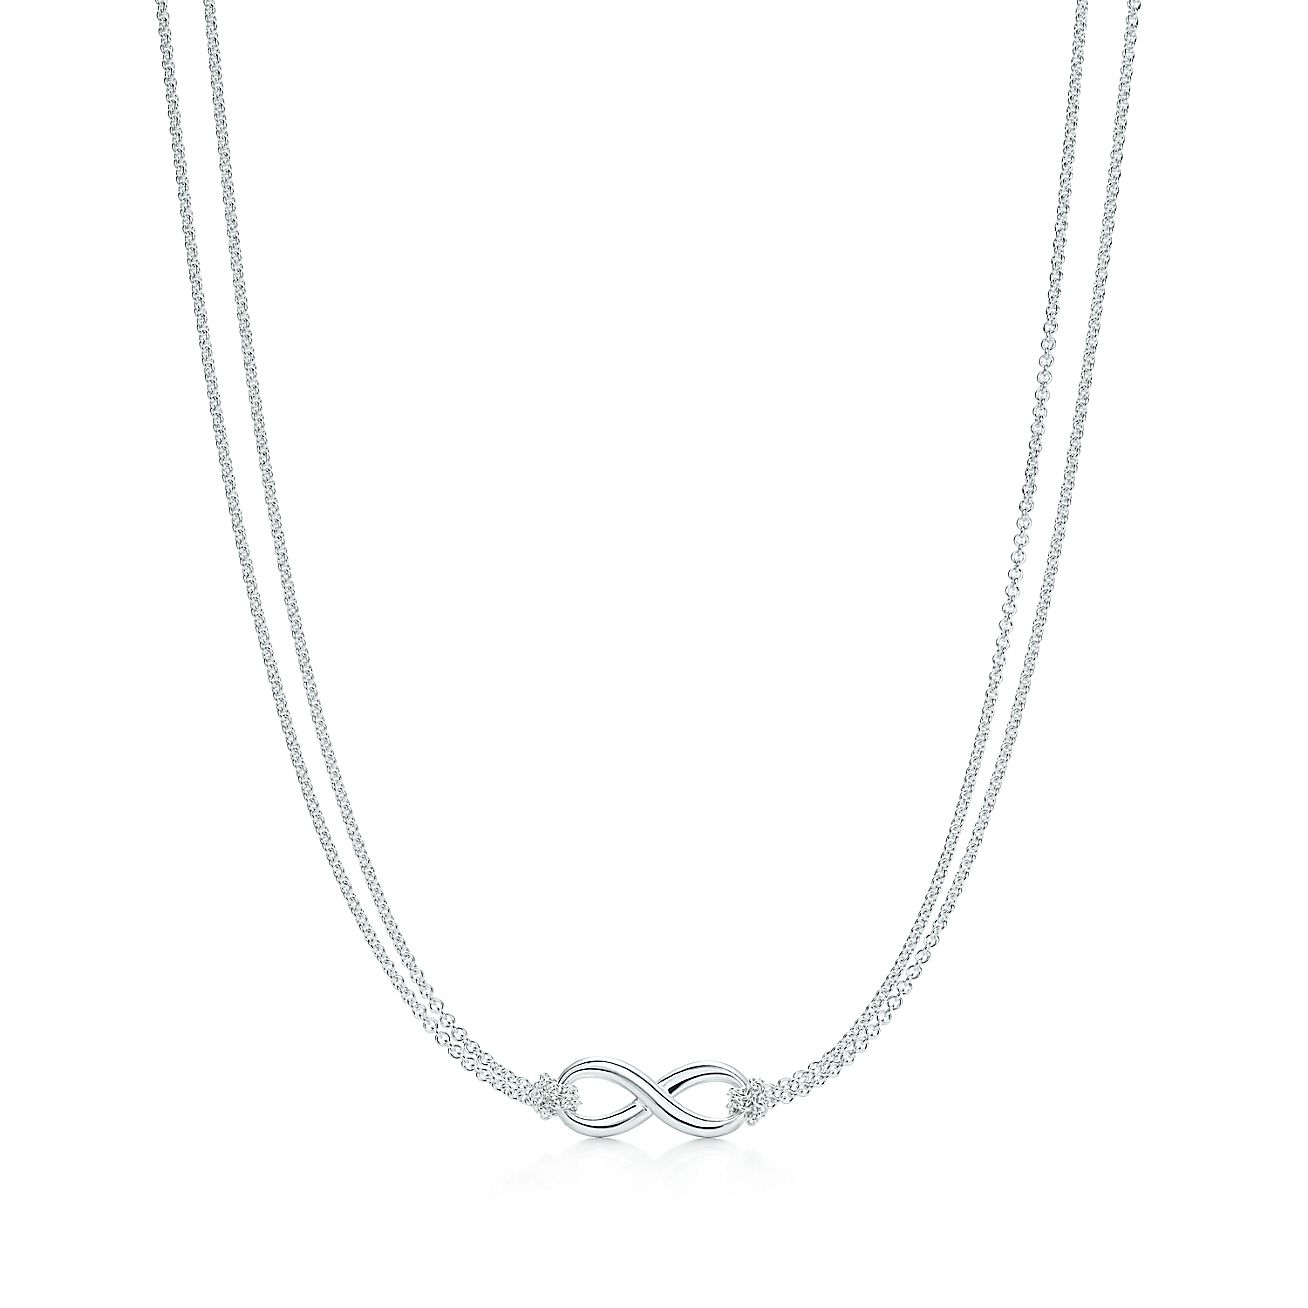 "Tiffany Infinity pendant in sterling silver on a 17"" chain ..."